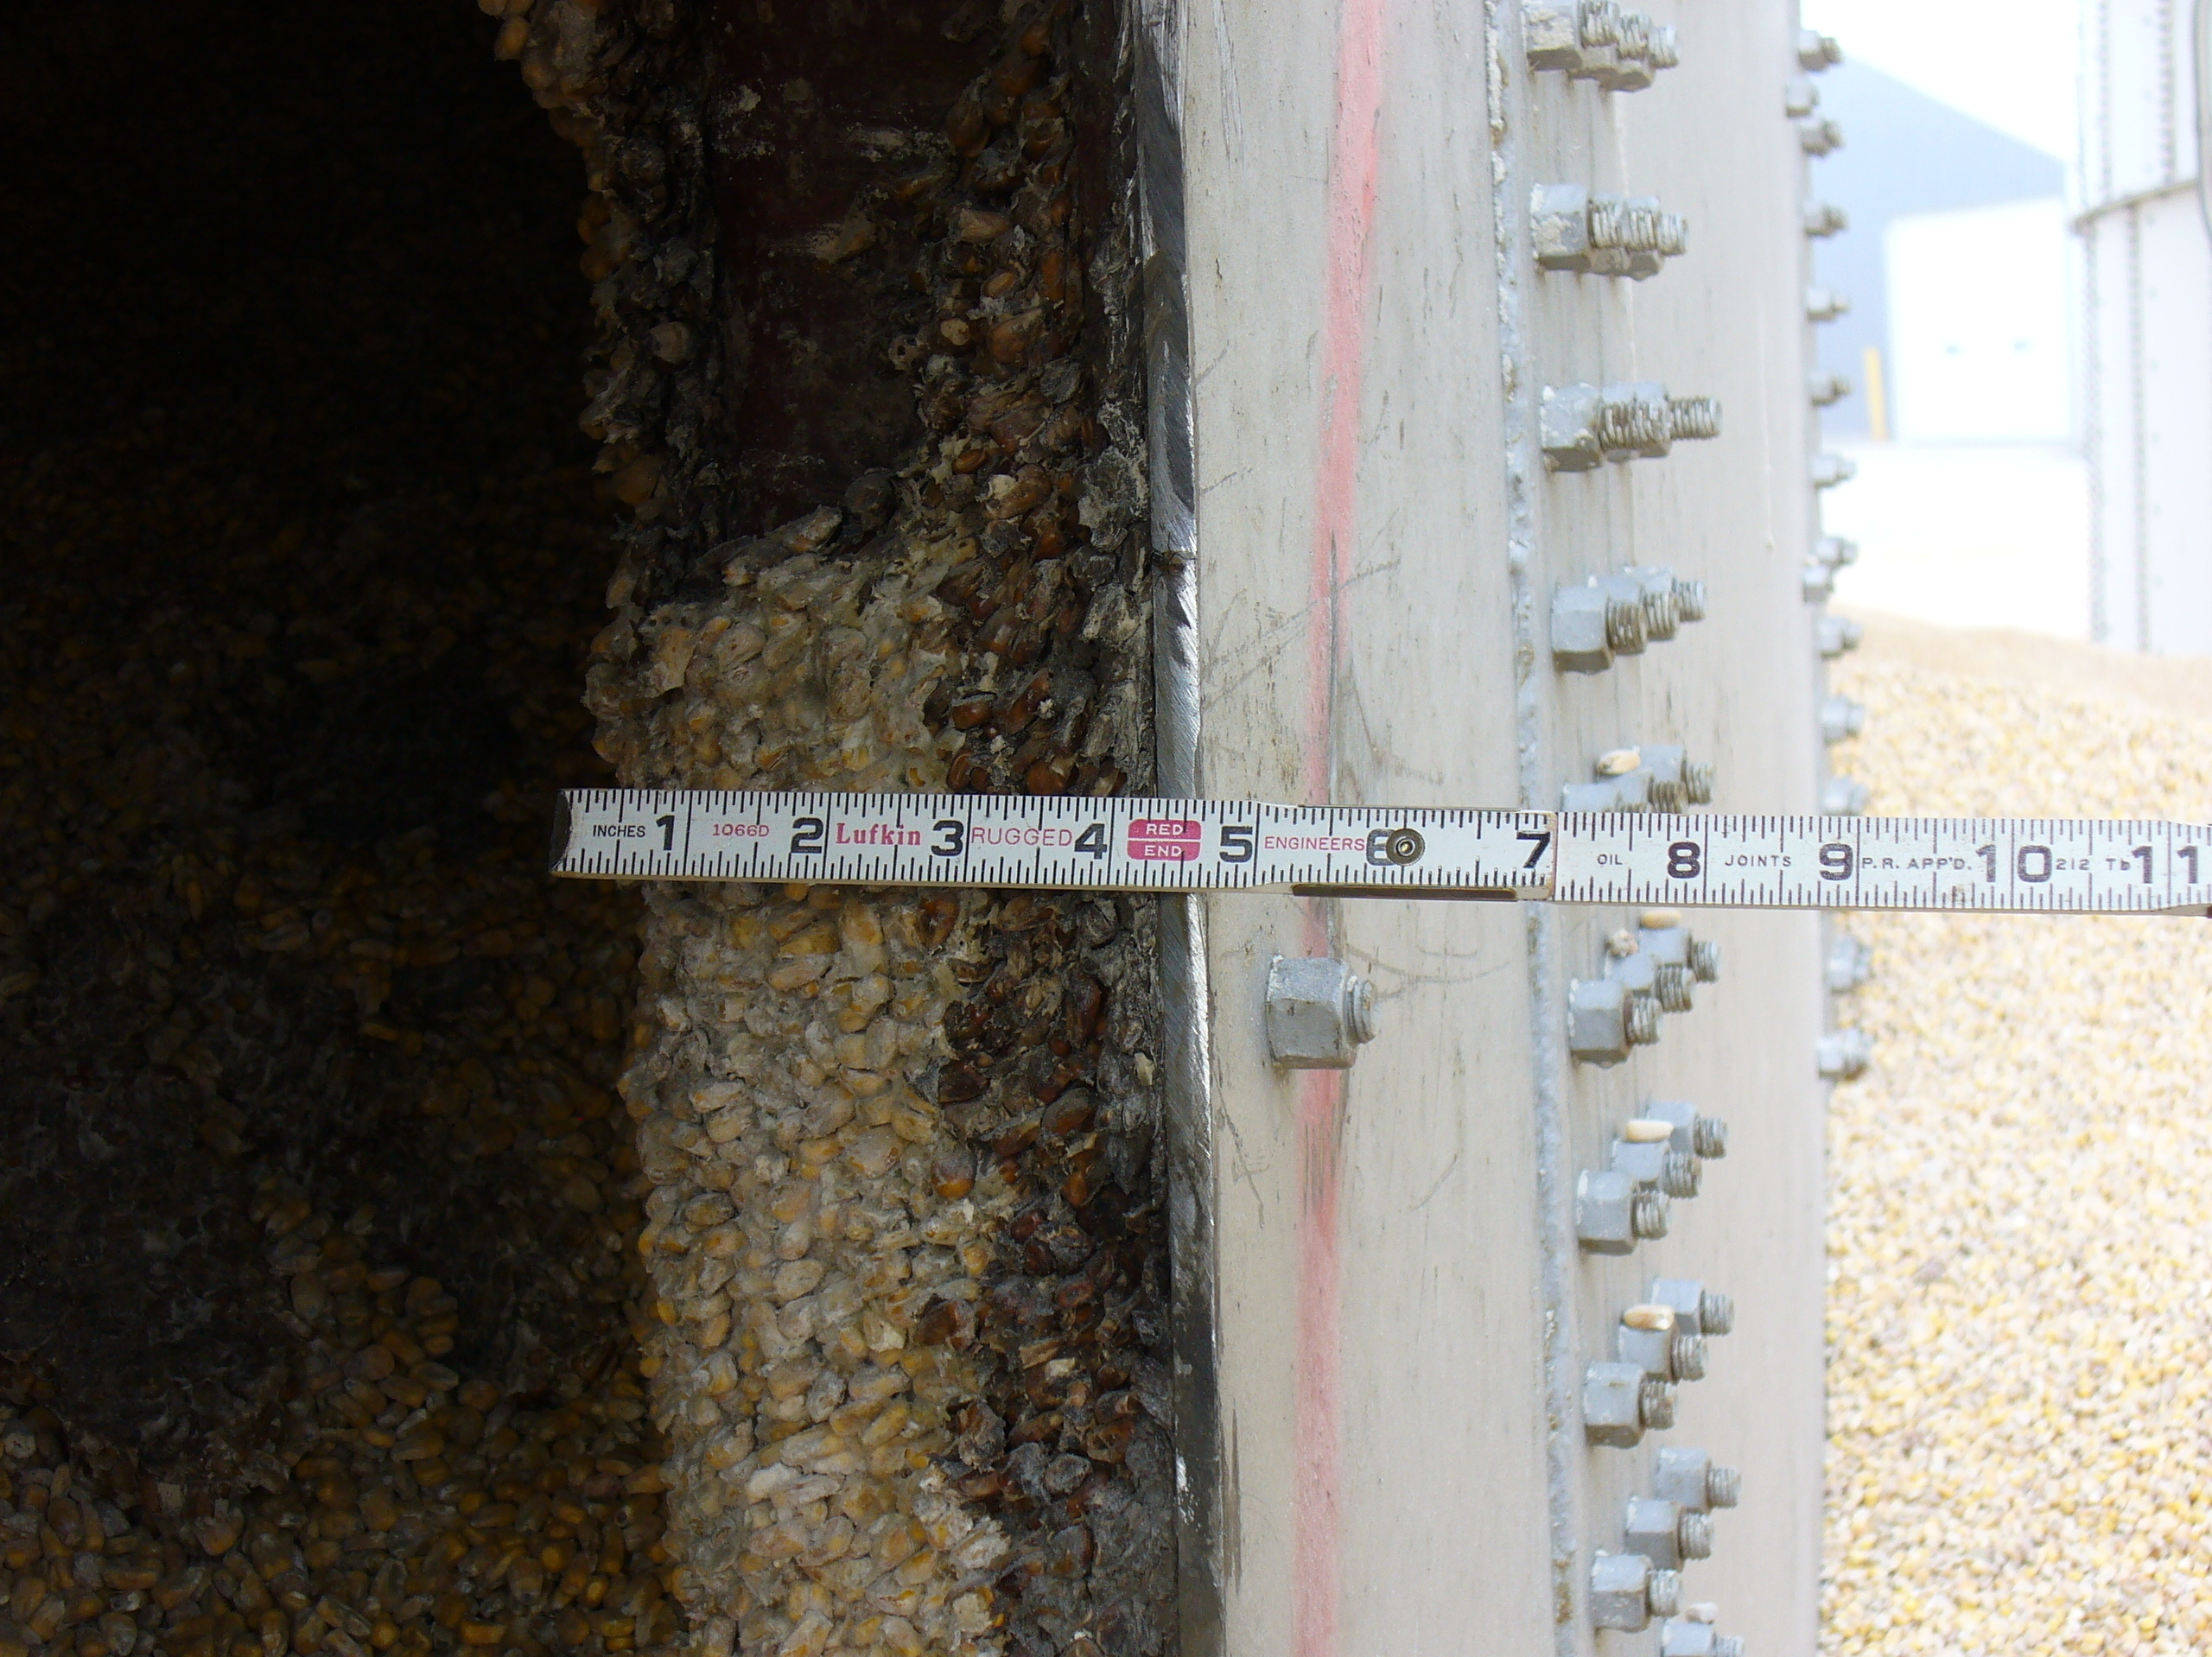 OSHA investigators took this photo of crusted corn, also known as bridged corn, stuck to the side of Haasbach's Bin No. 9 shortly after the July 2010 deaths. Working under bridged corn is prohibited by federal law because it can peel away without warning and trap workers.